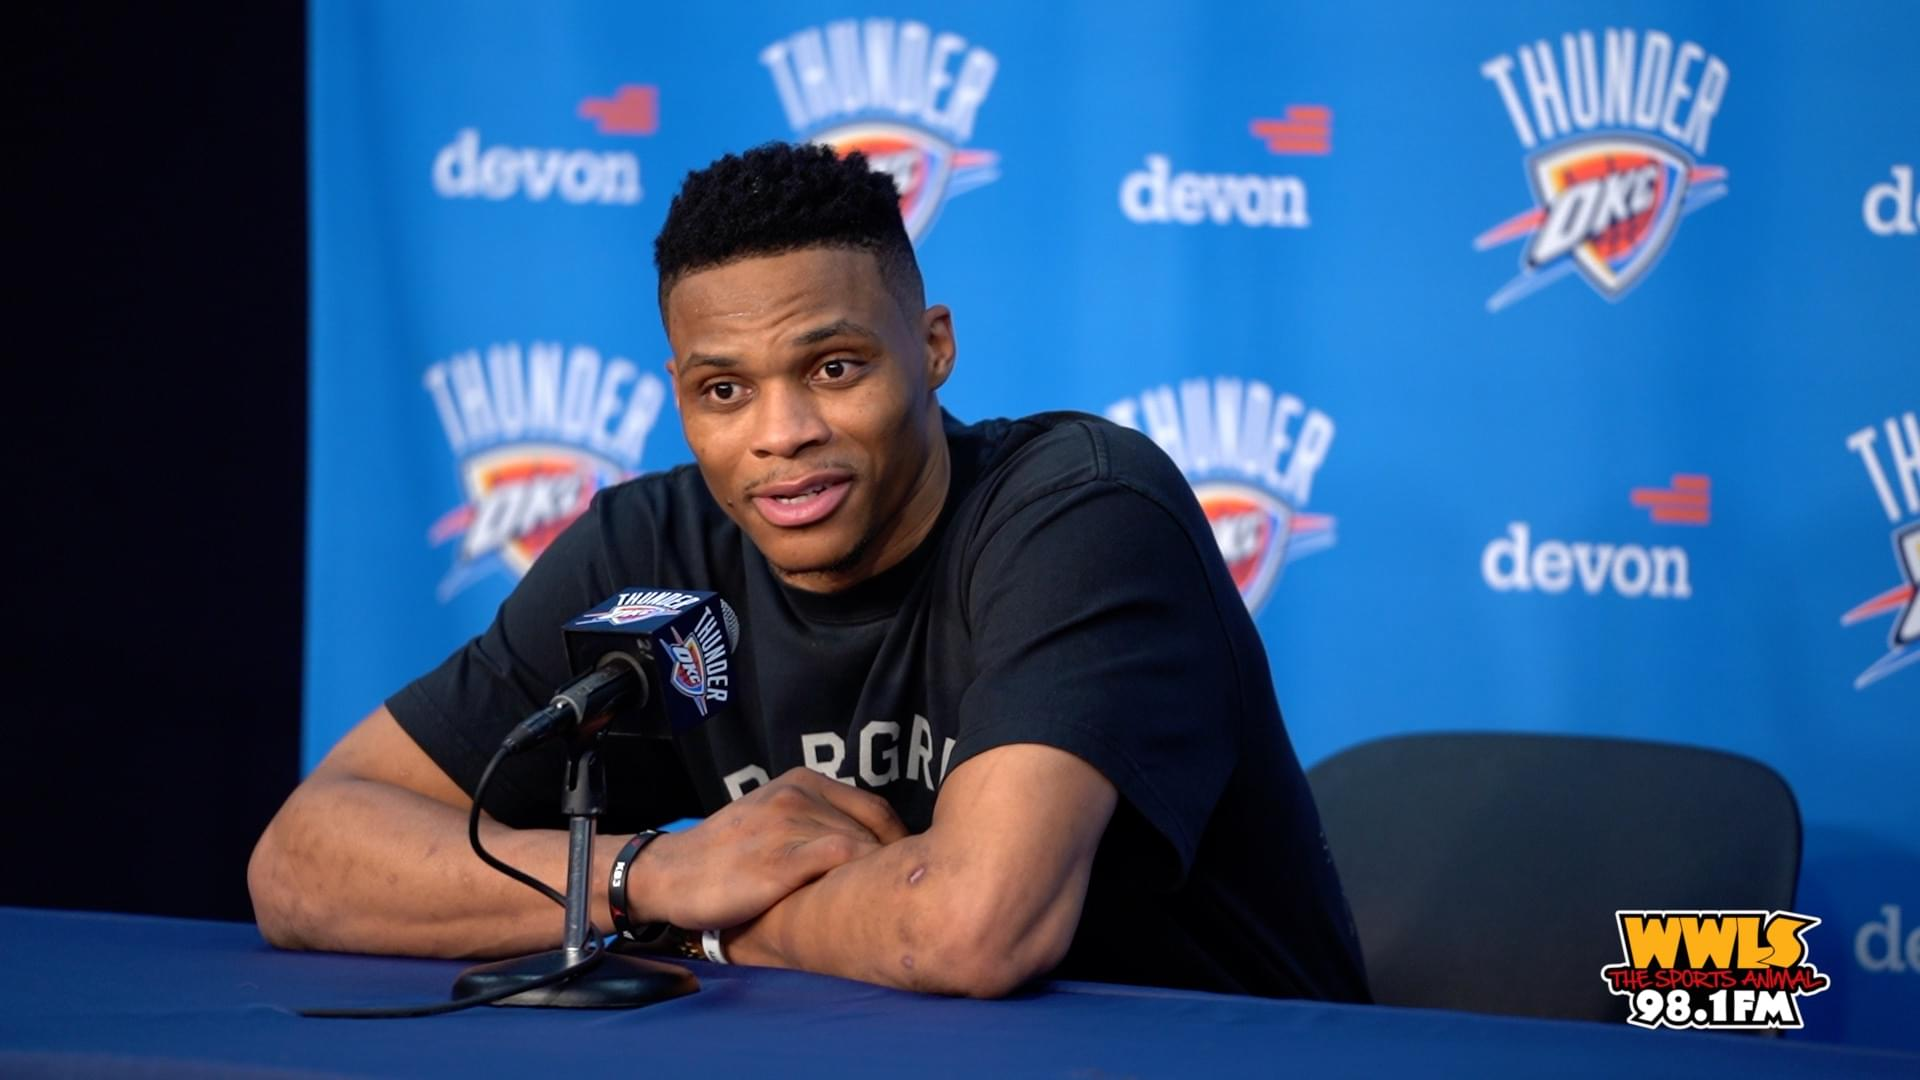 RUSSELL WESTBROOK AFTER RETURN TO OKC